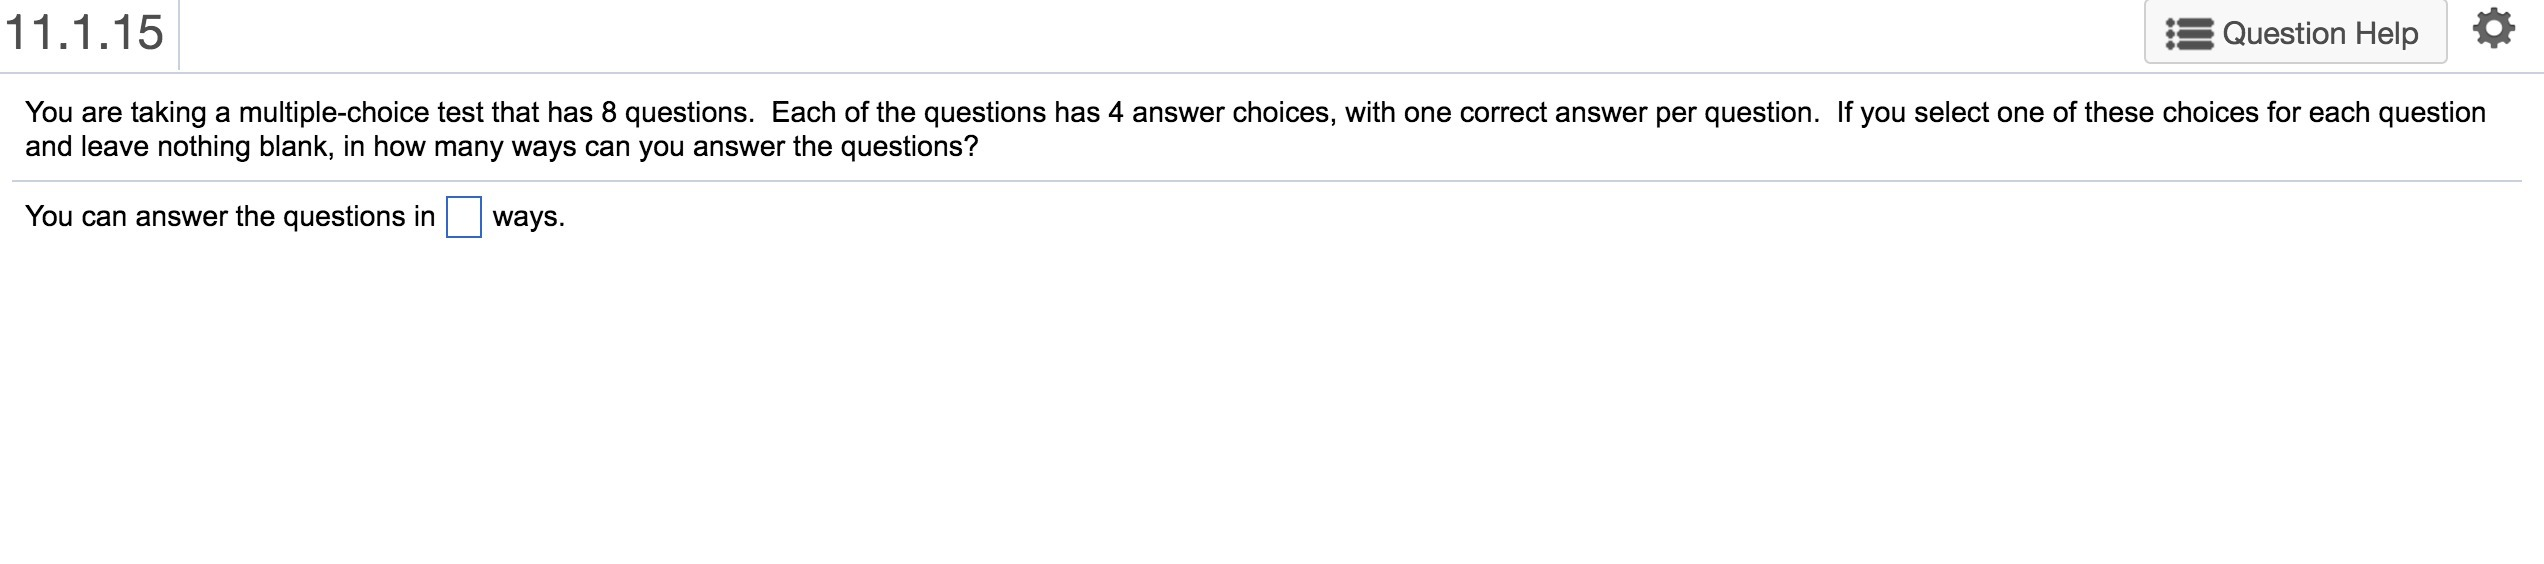 You are taking a multiple-choice test that has 8 questions